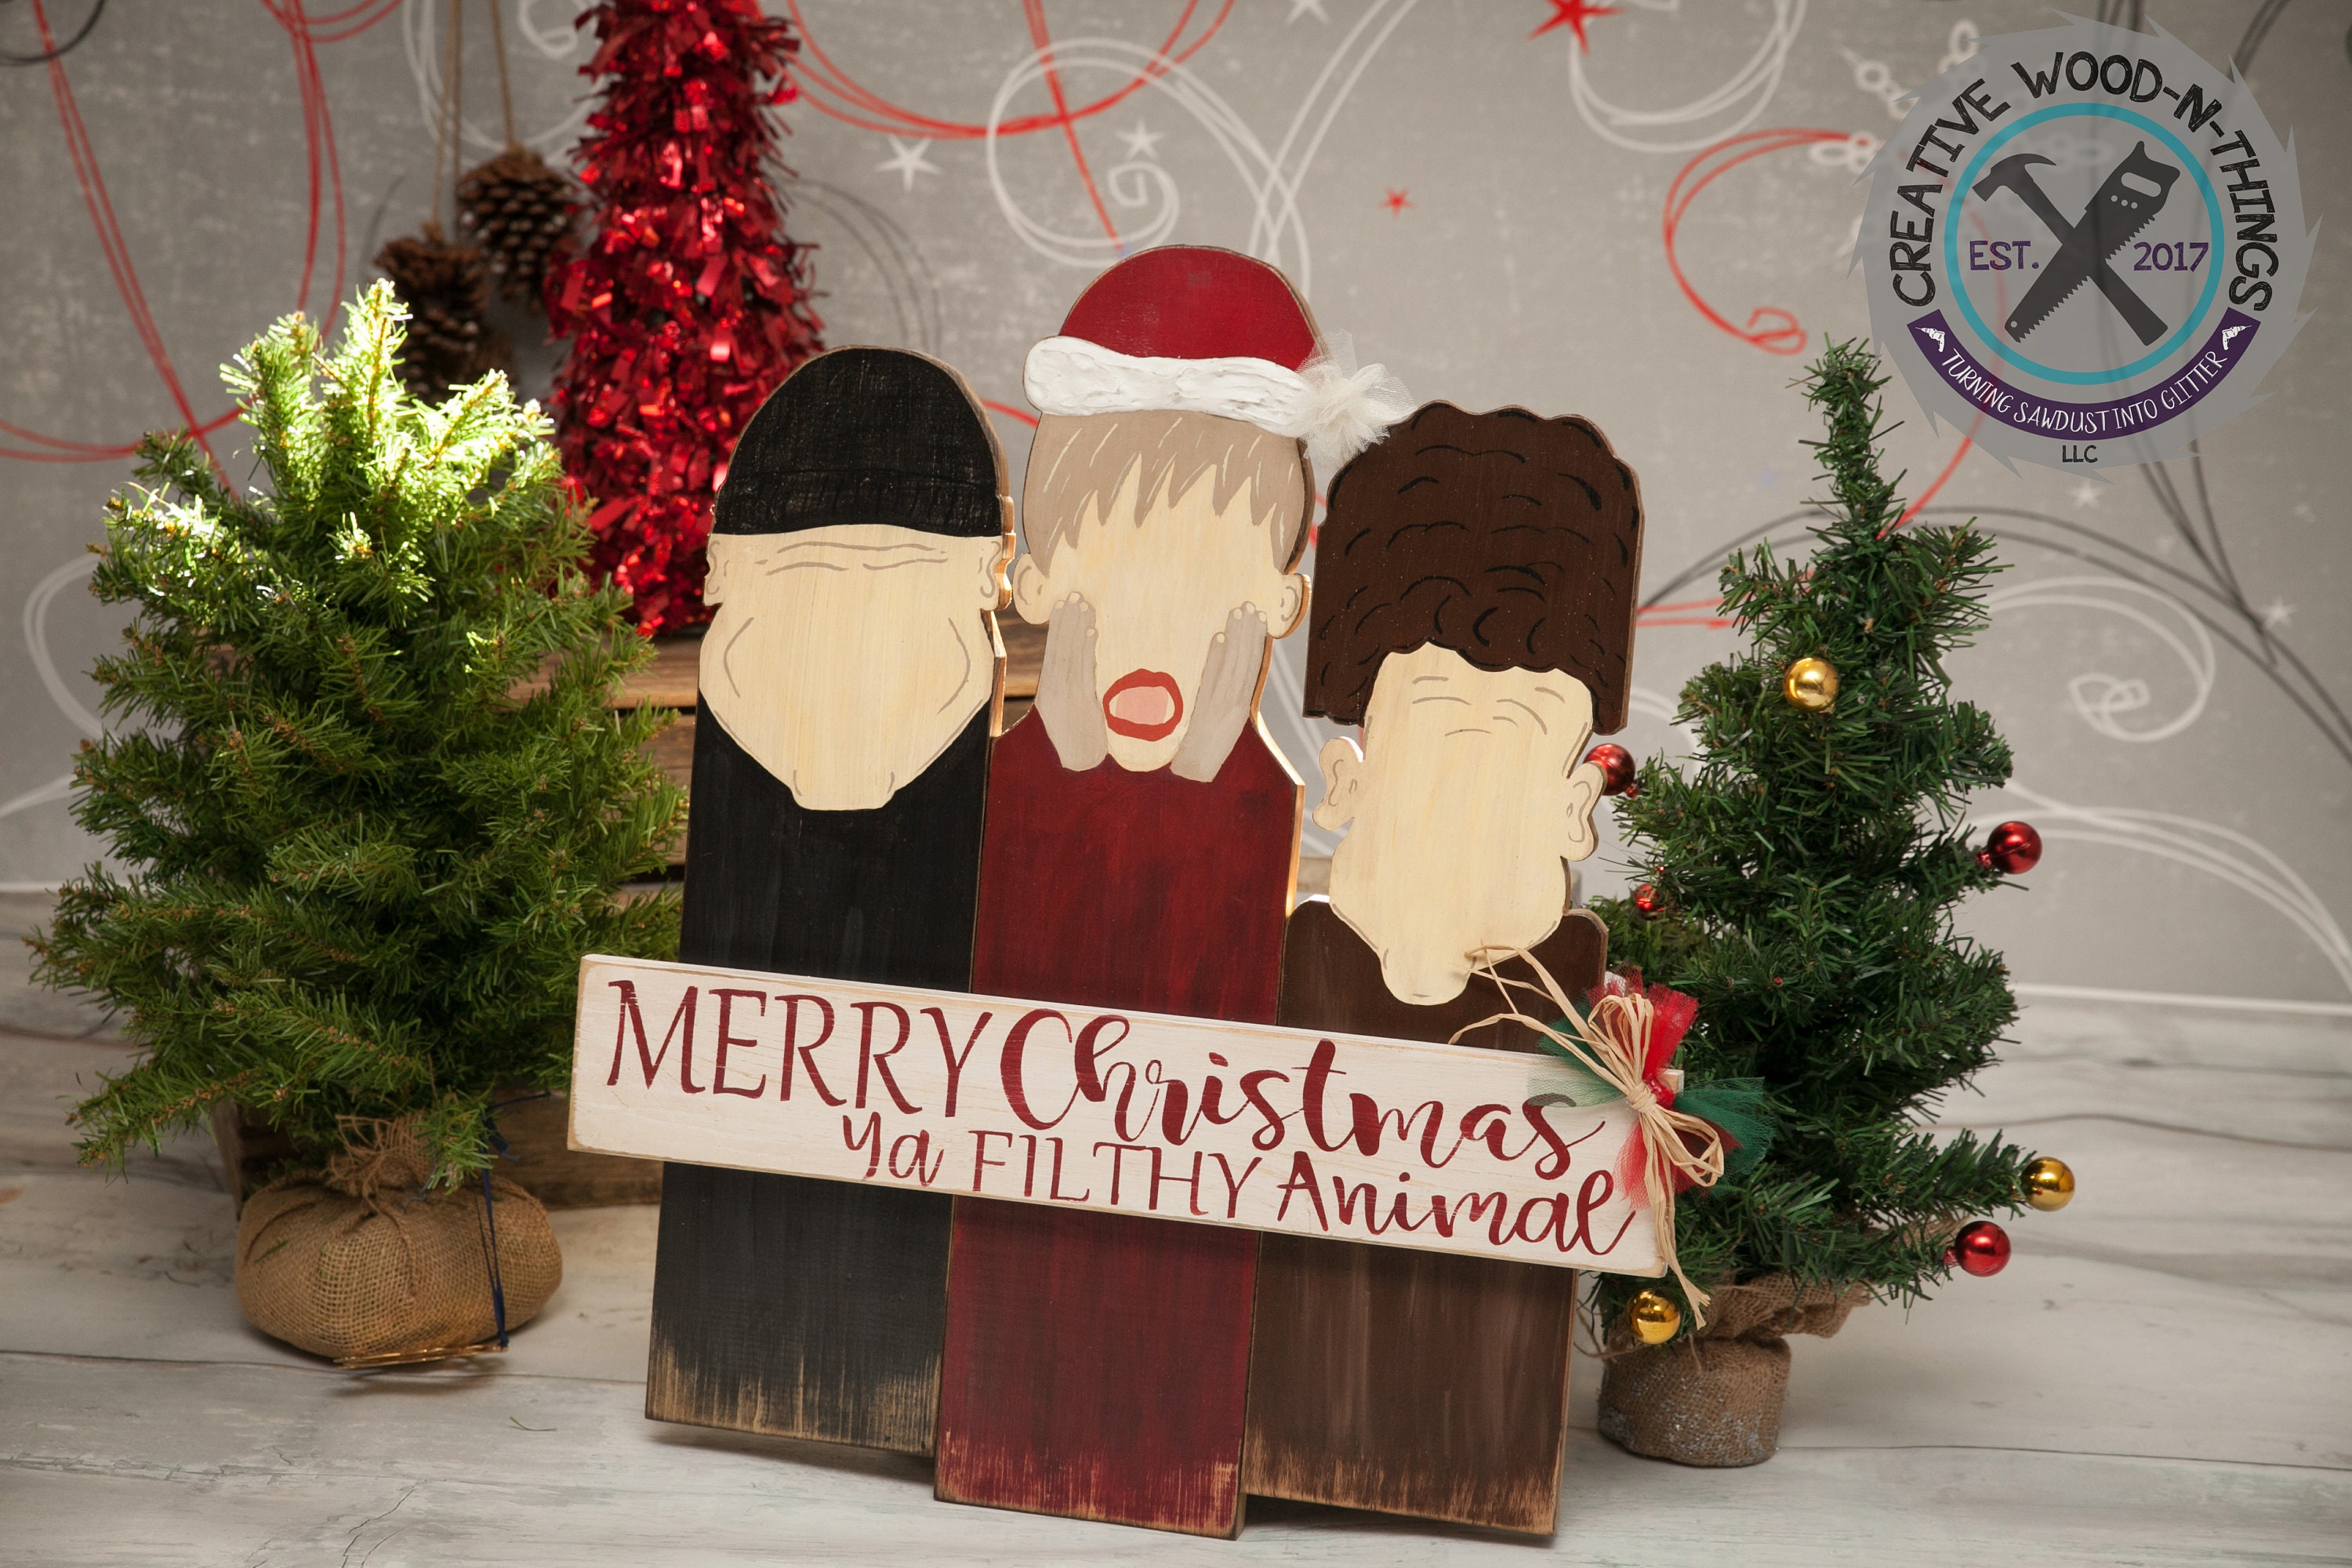 Christmas Decor Merry Christmas Ya Filthy Animal Home Alone Sign Funny Sign Diy Wood Kit Rustic Decor Christmas Decor Porch Sign